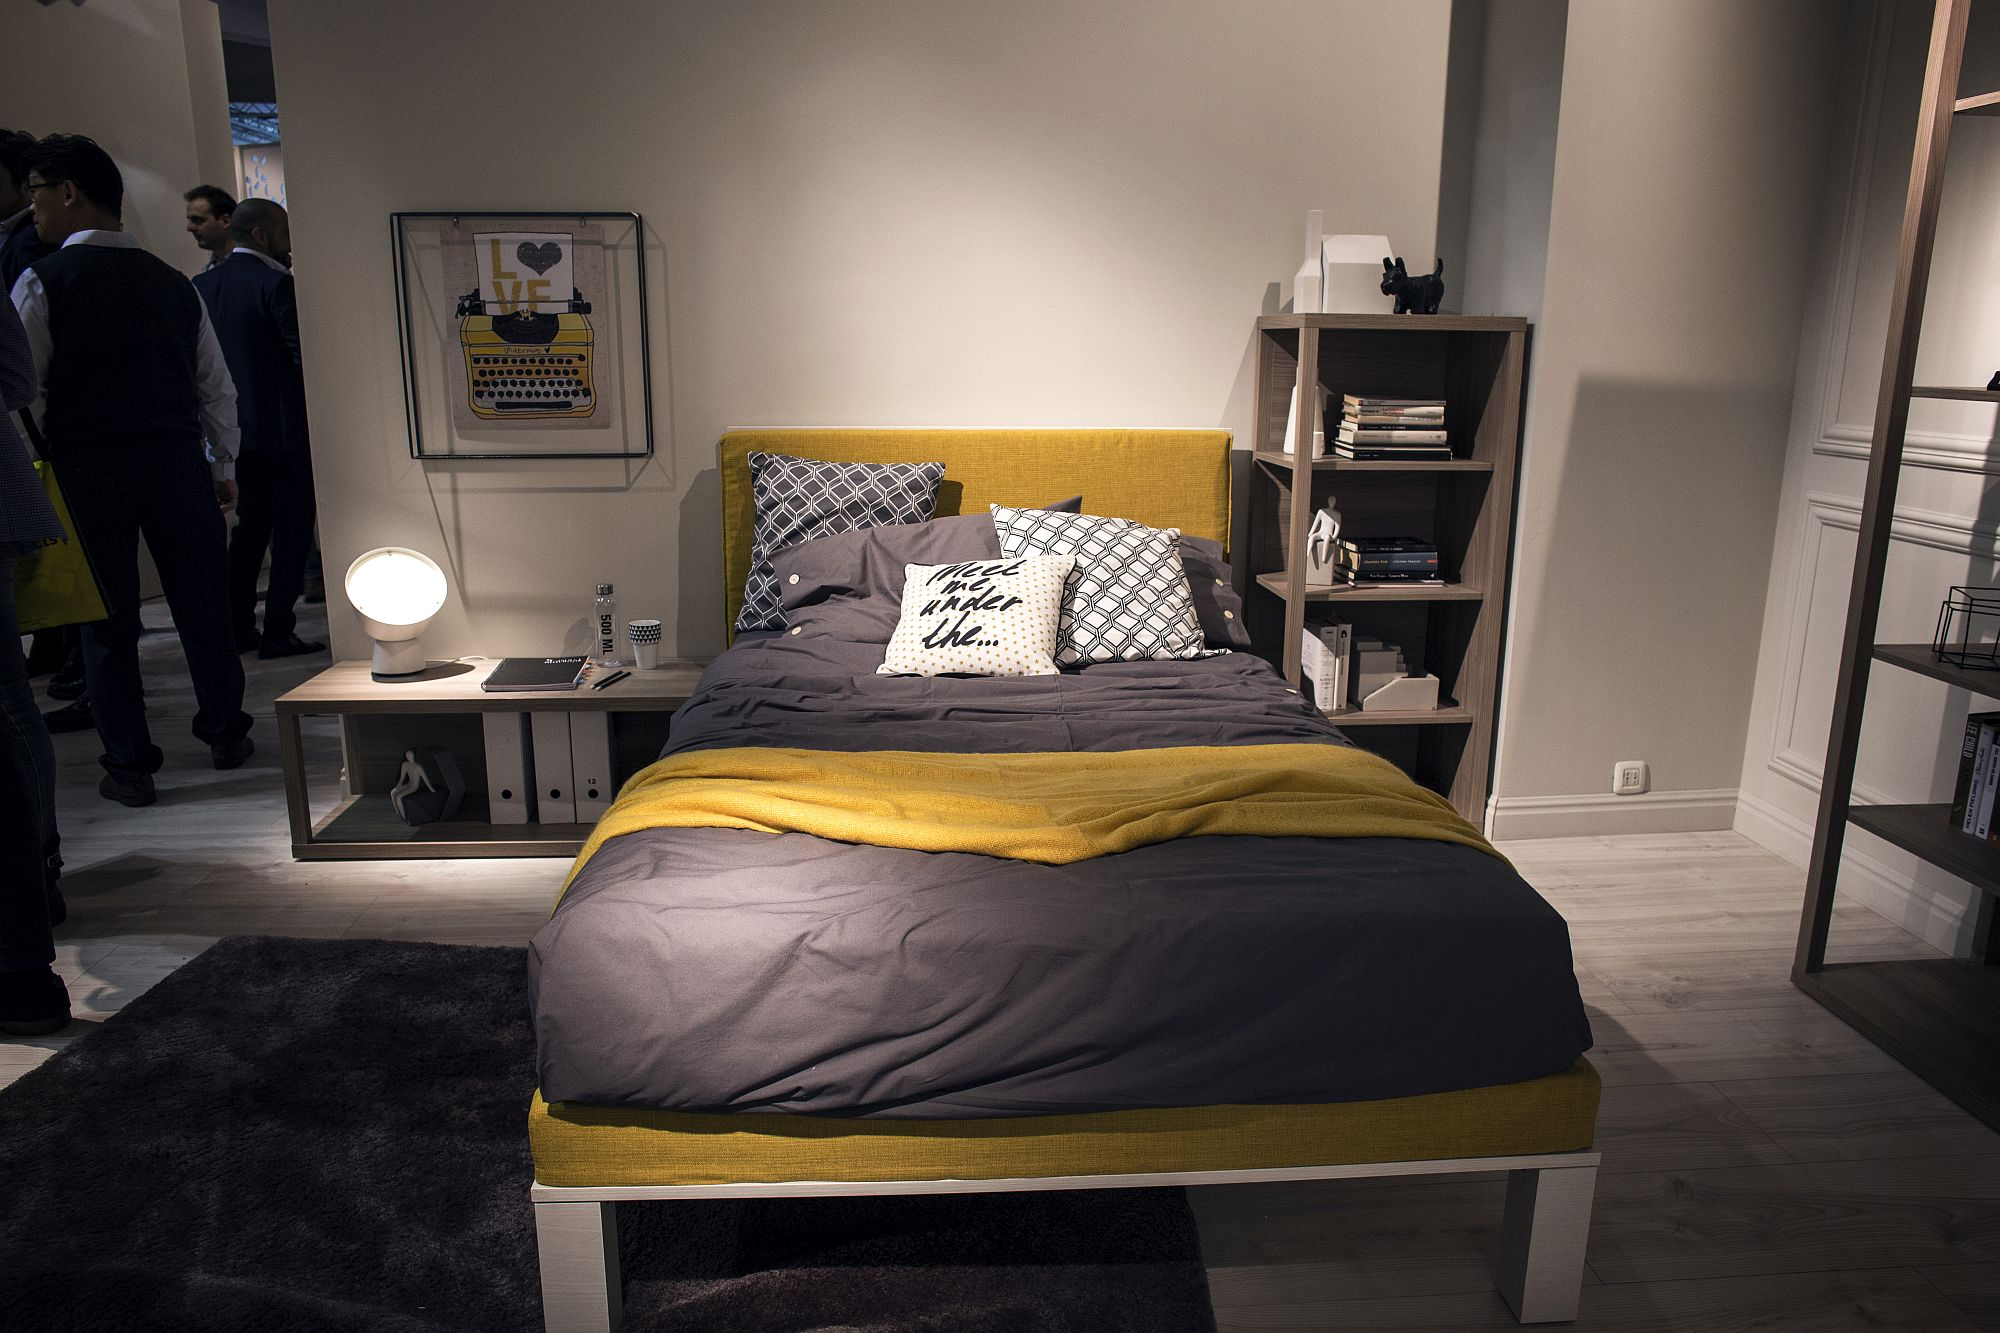 Nightstands turned into shelving space in the bedroom